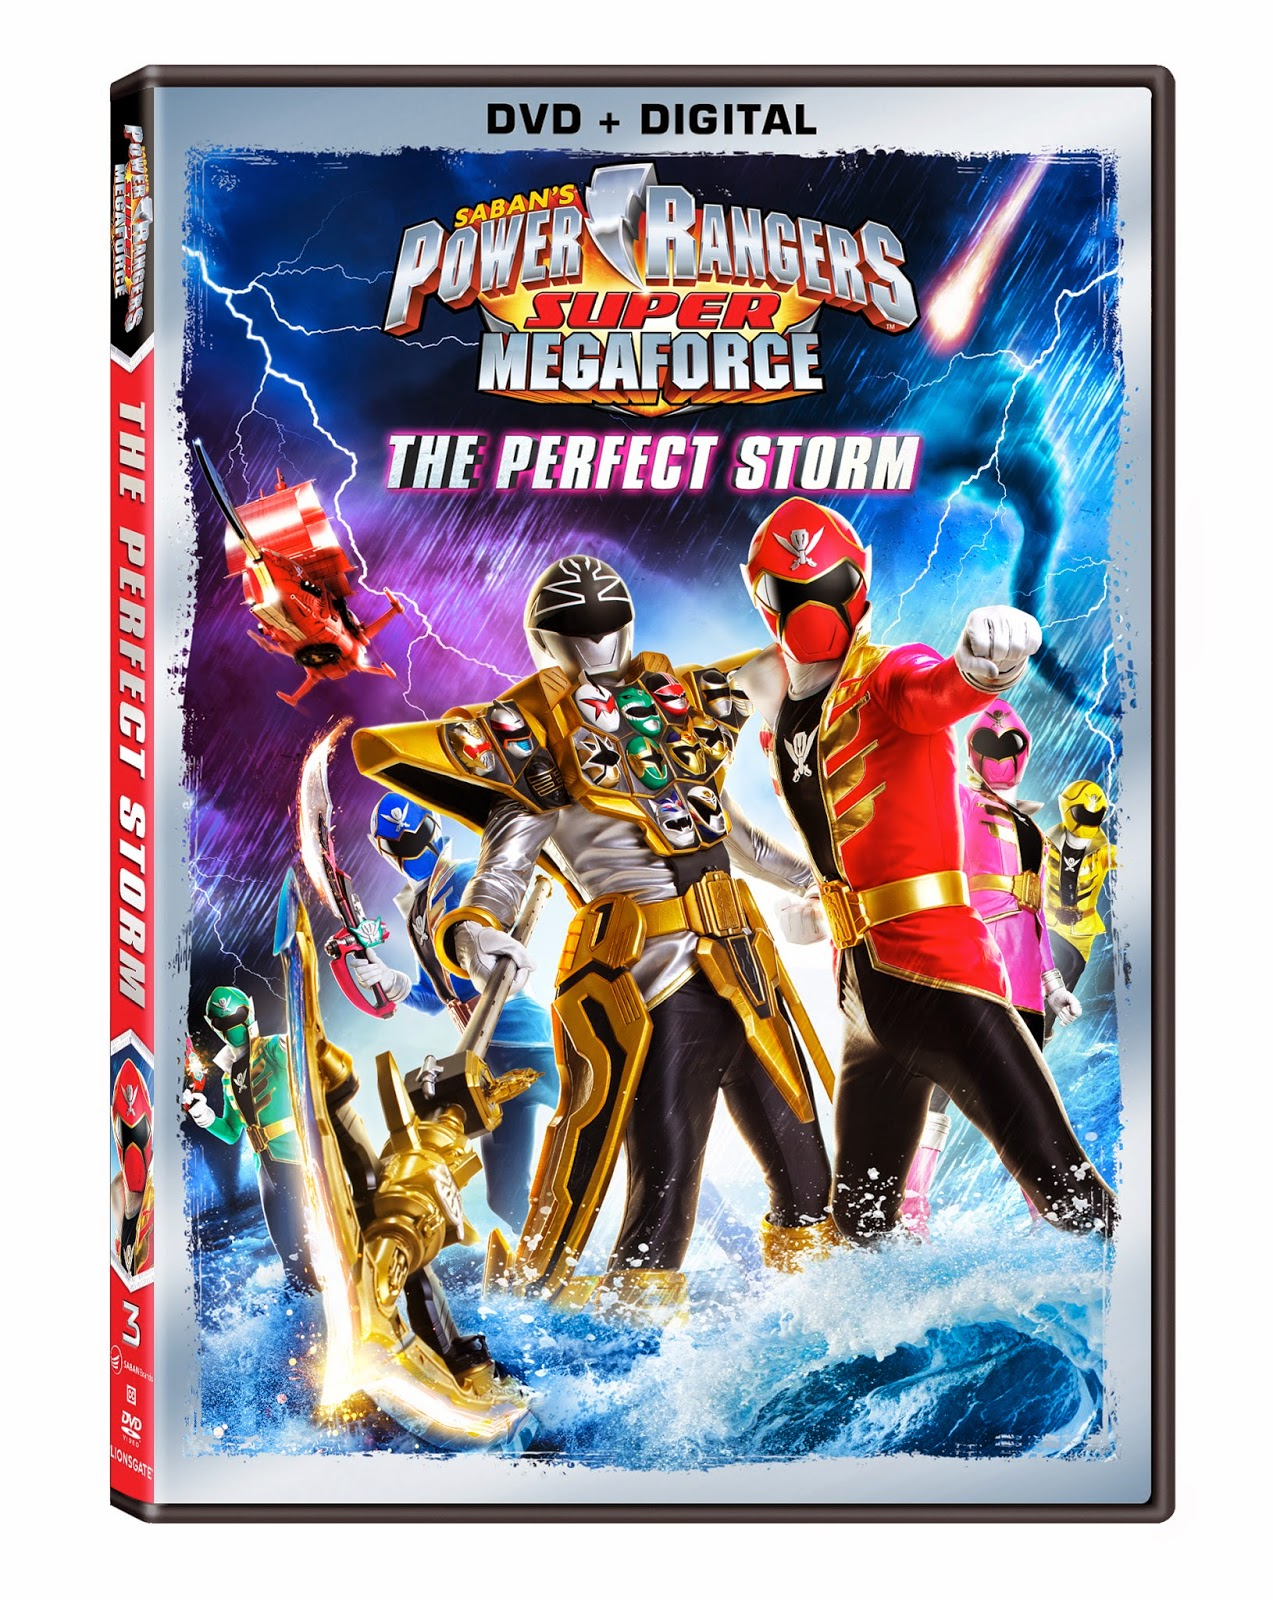 DVD Review - Power Rangers Super Megaforce: The Perfect Storm